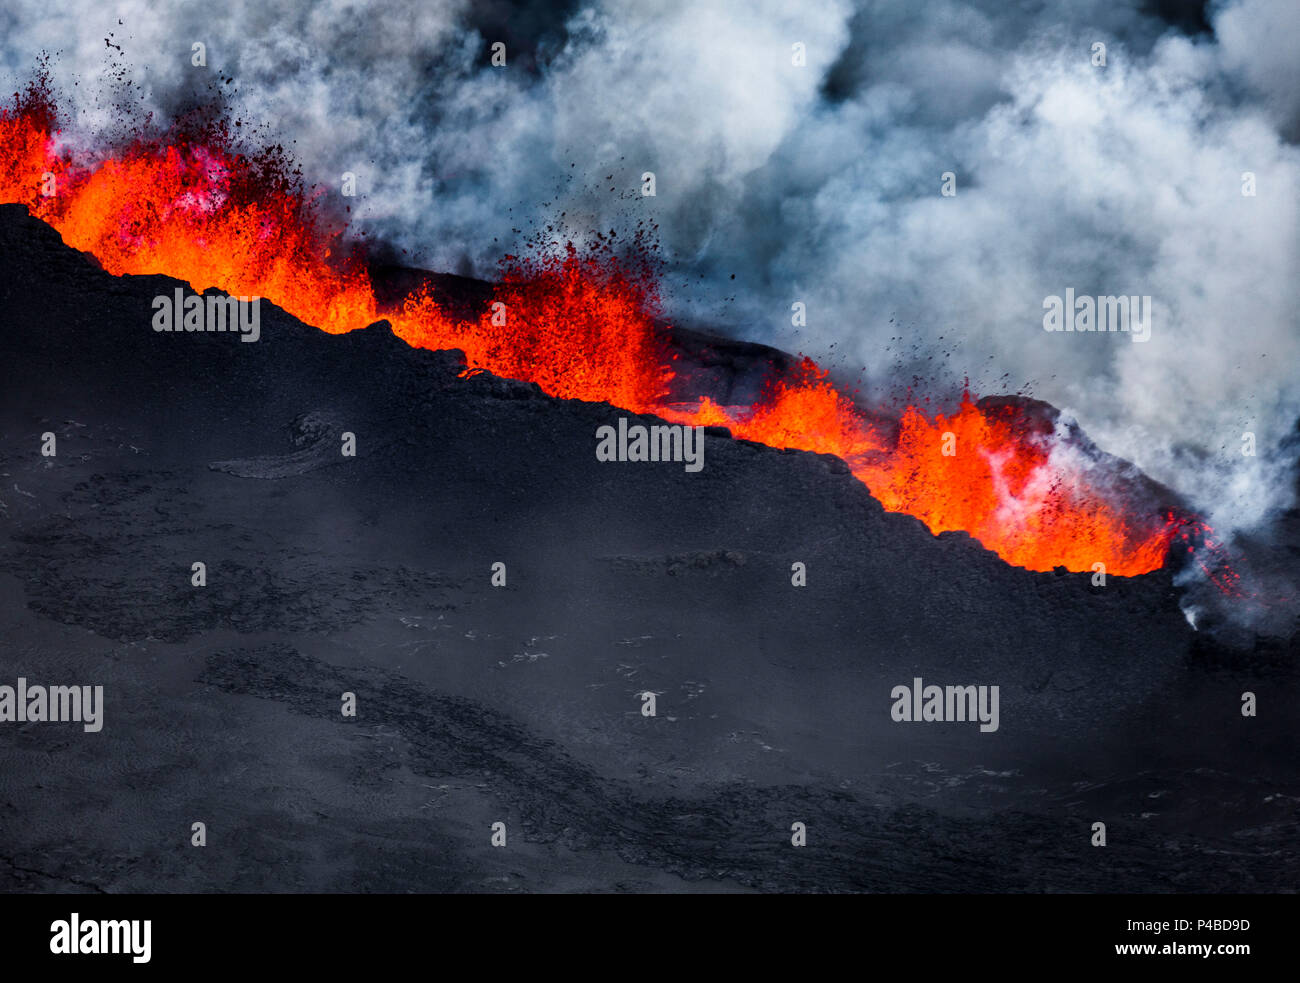 Volcano Eruption at the Holuhraun Fissure near Bardarbunga Volcano, Iceland. August 29, 2014 a fissure eruption started in Holuhraun at the northern end of a magma intrusion, which had moved progressively north, from the Bardarbunga volcano. Picture Date-Sept. 1, 2014 - Stock Image